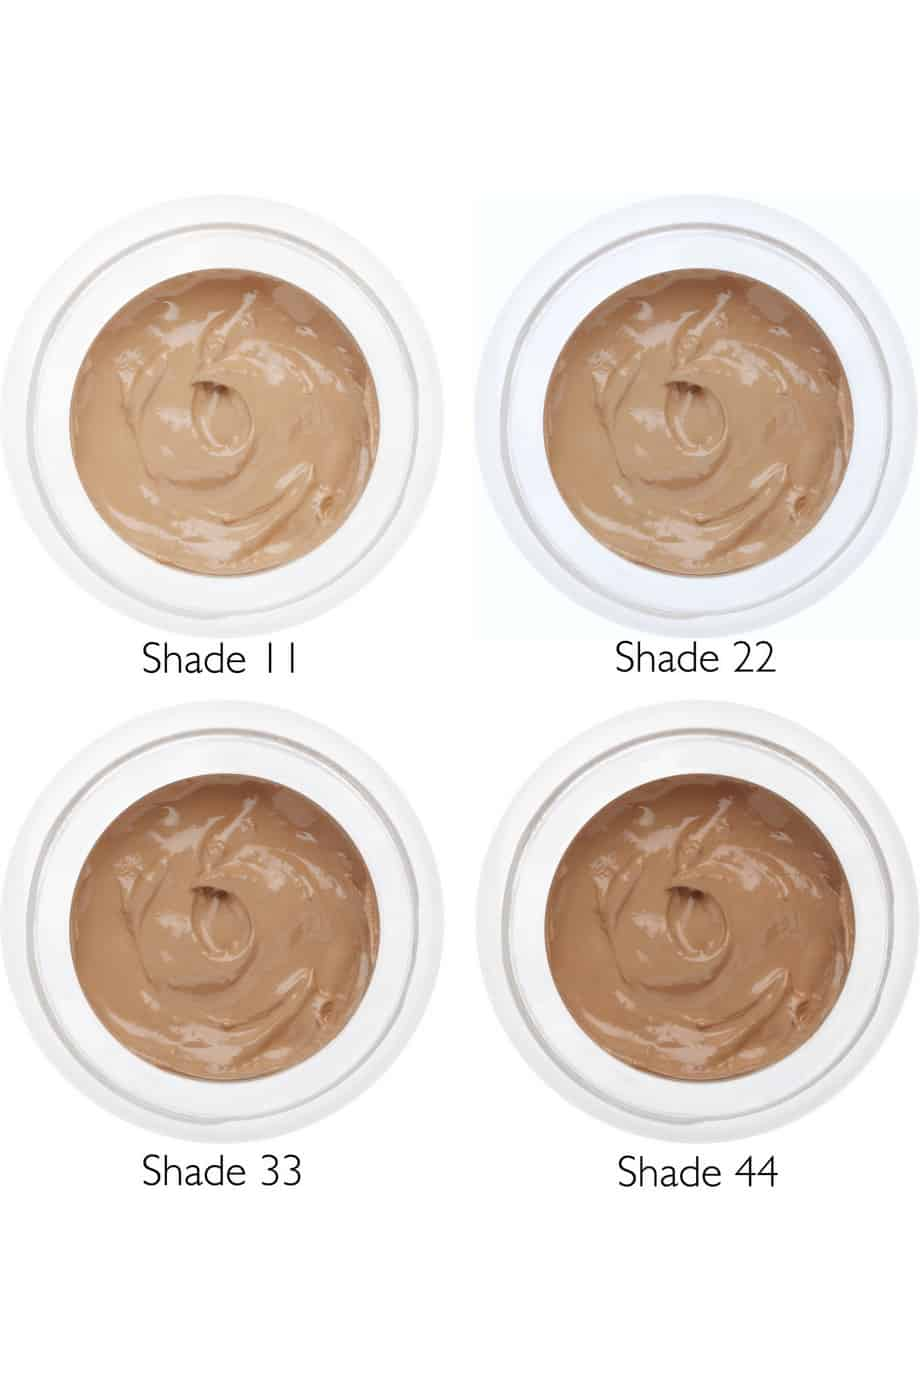 Natural Eye Makeup Brands For Every Day